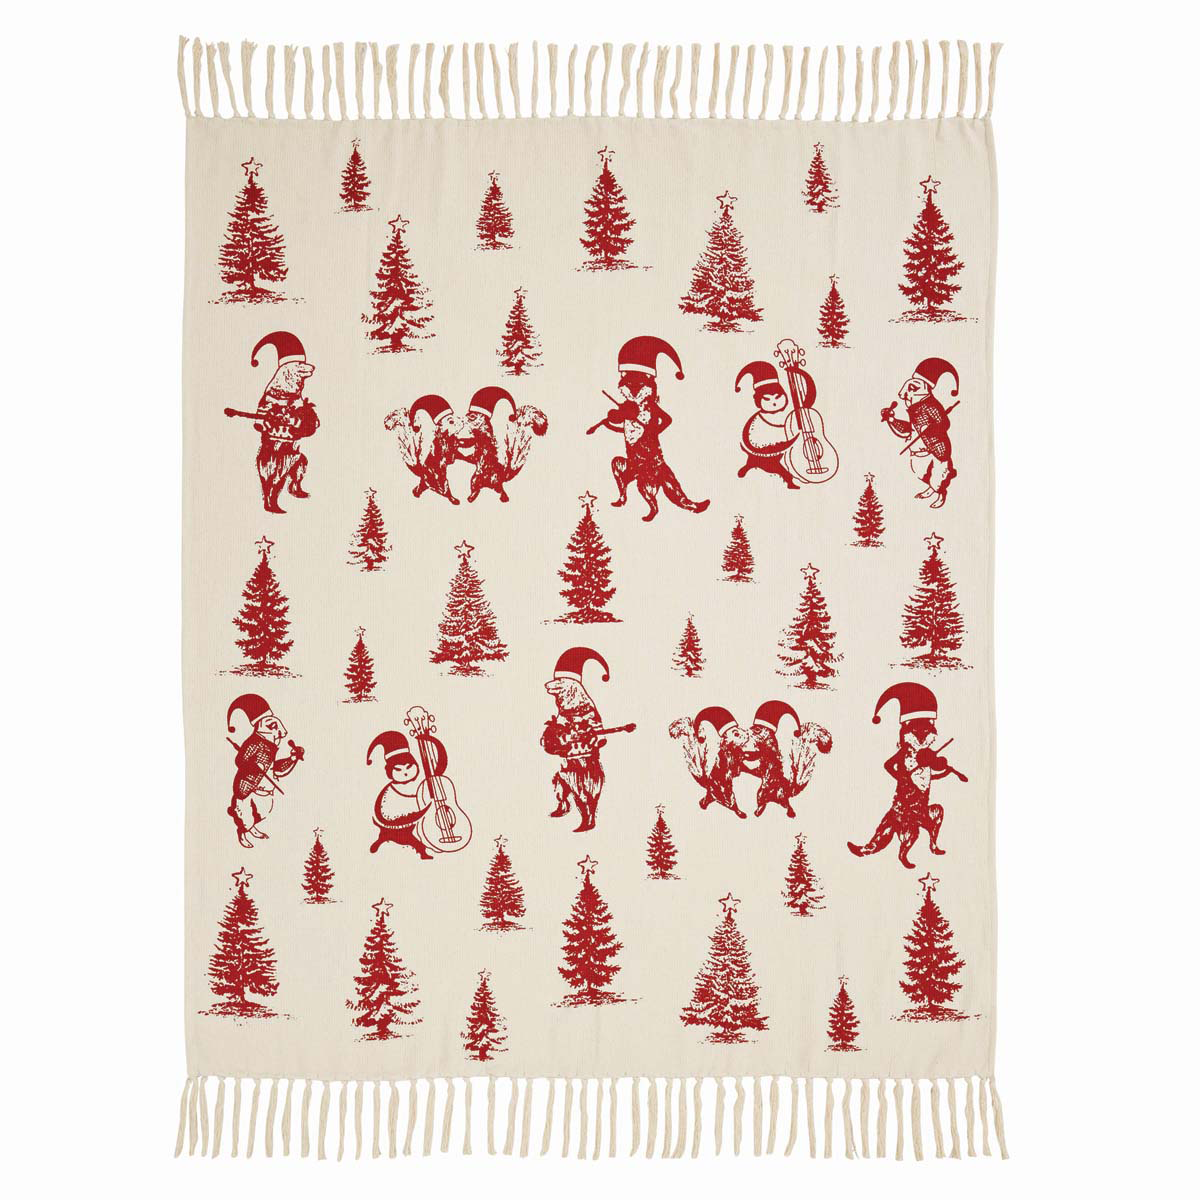 Creature Carol Woven Throw